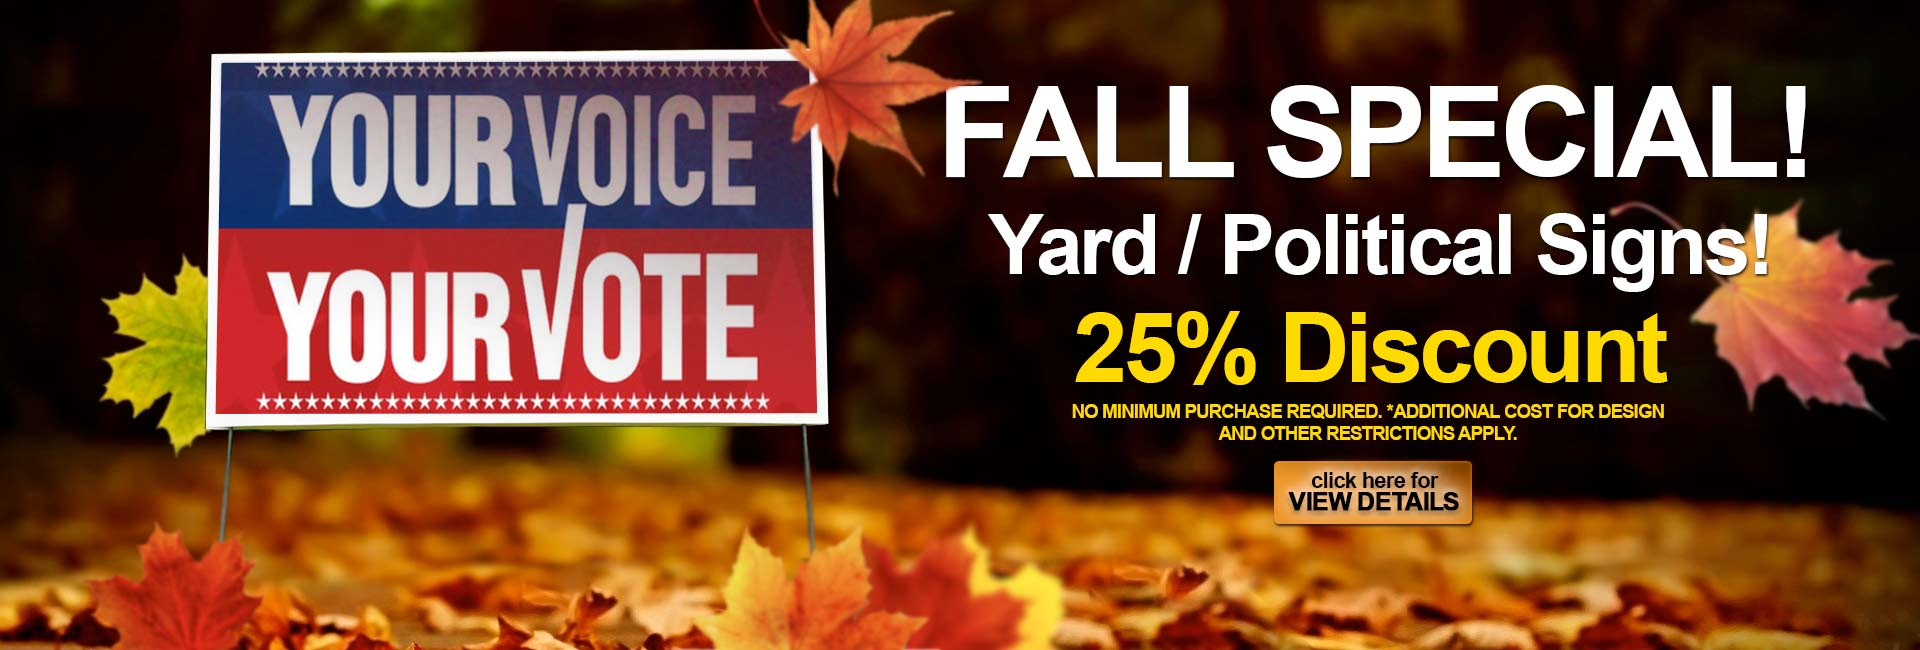 Fall-Special-2015